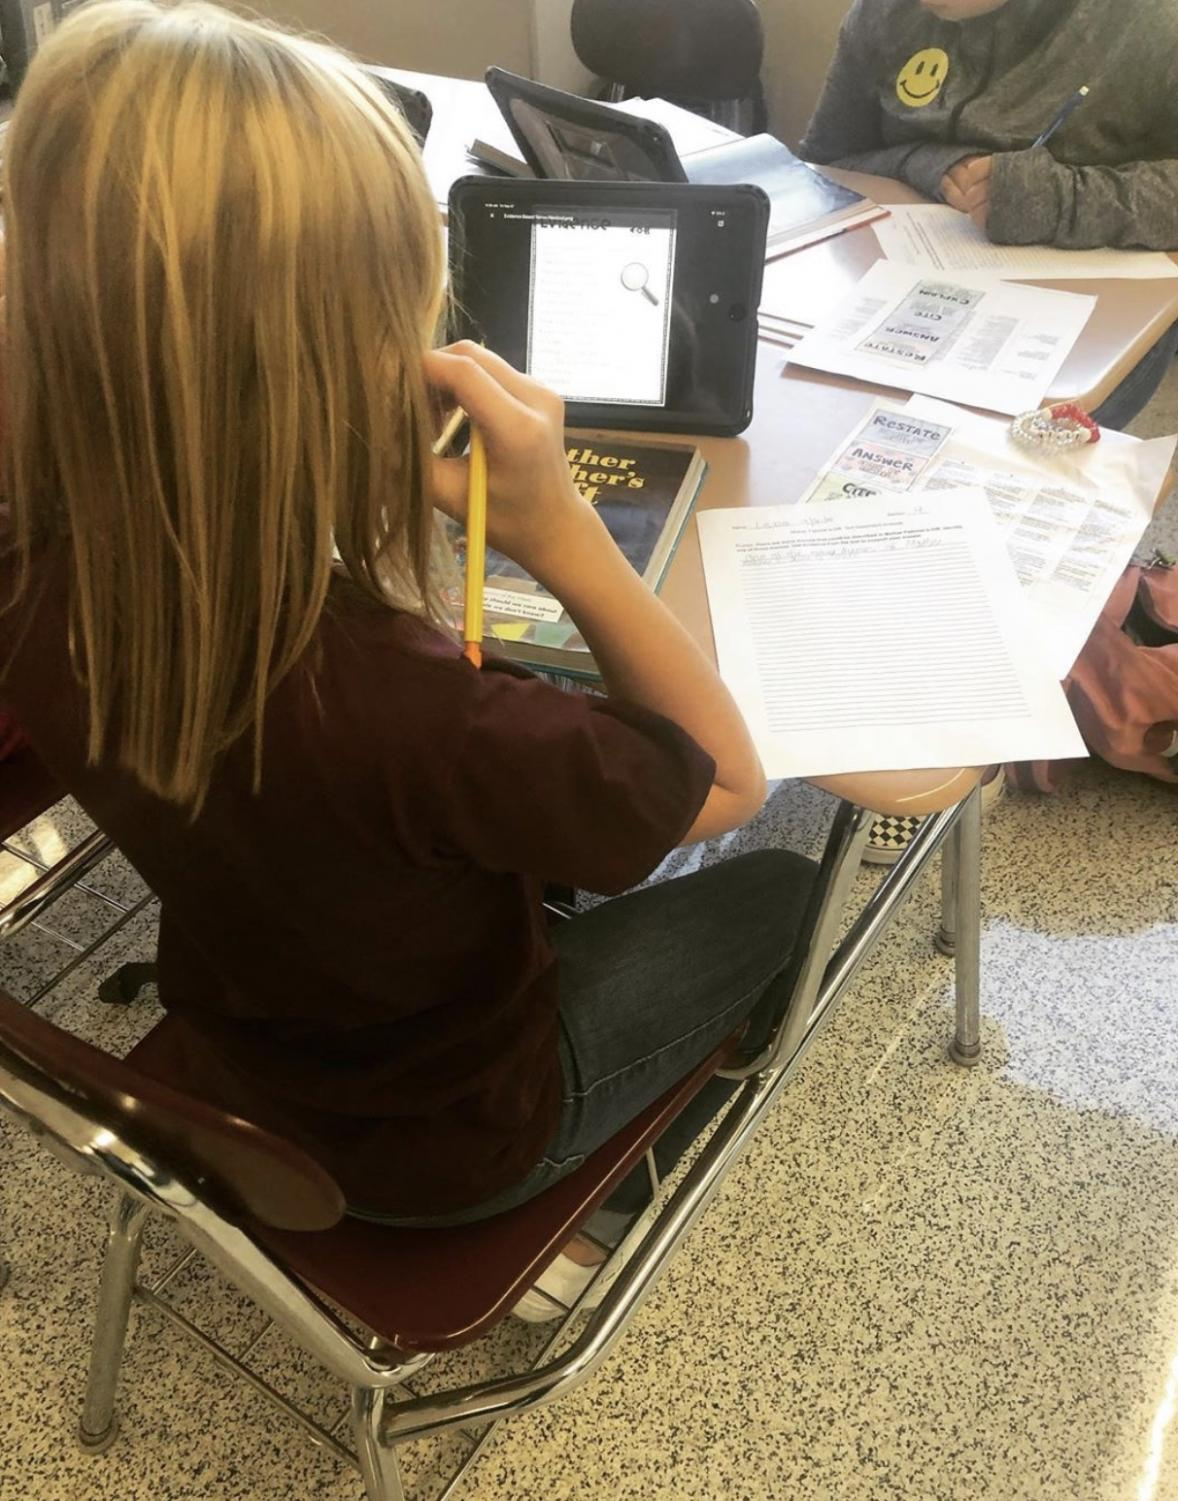 WRITE - Sixth grader Lexie Scanlan uses her iPad to assist in completing a text-dependent analysis assignment in ELA class.